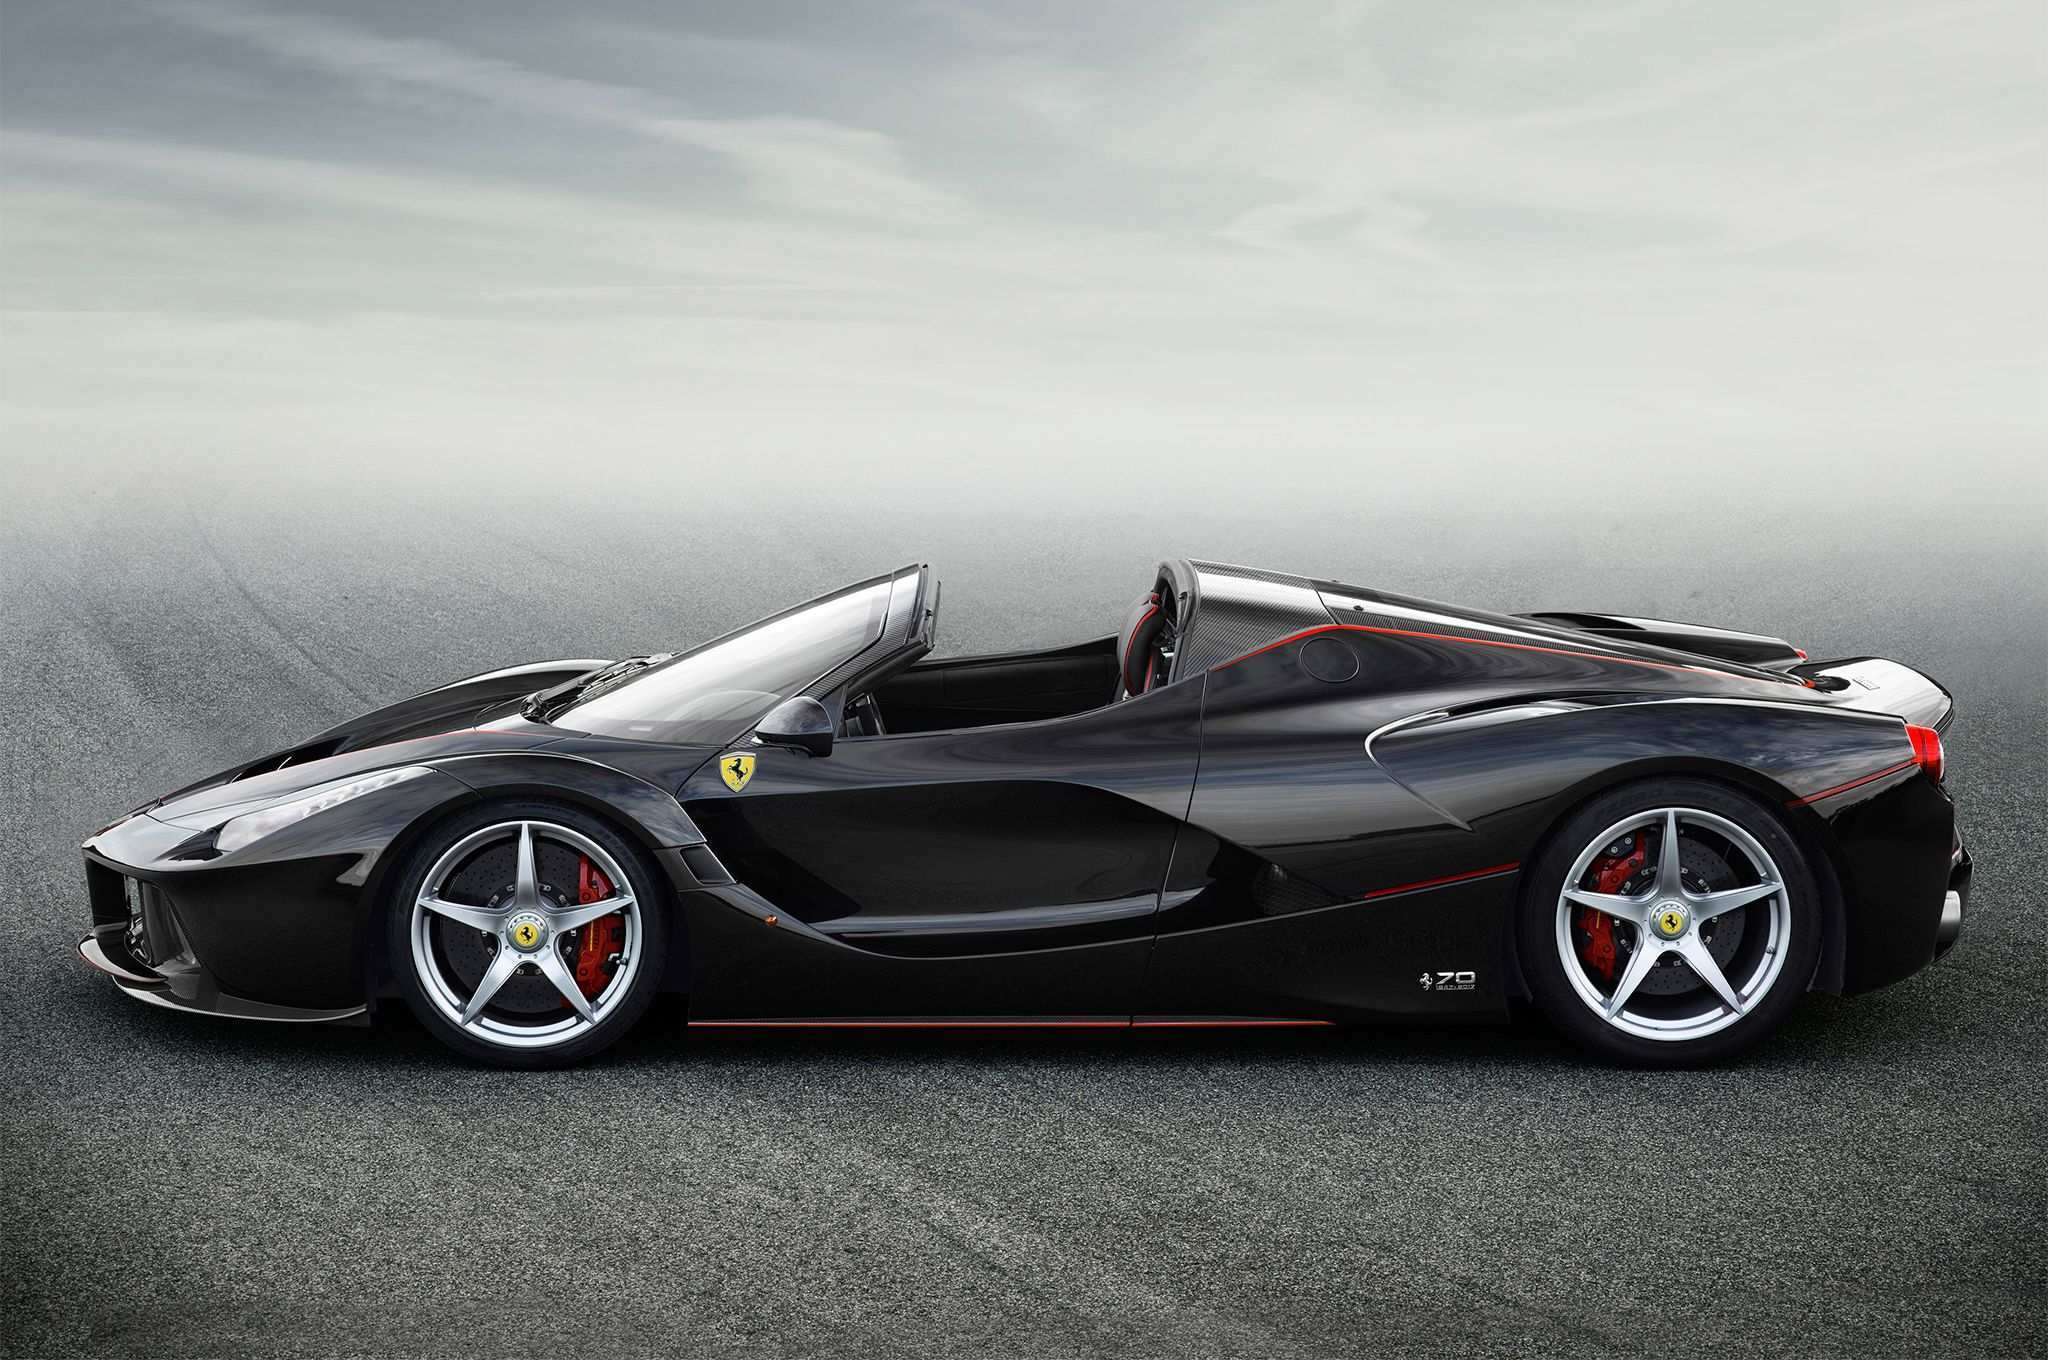 24 Great Ferrari Hybride 2019 Prices for Ferrari Hybride 2019